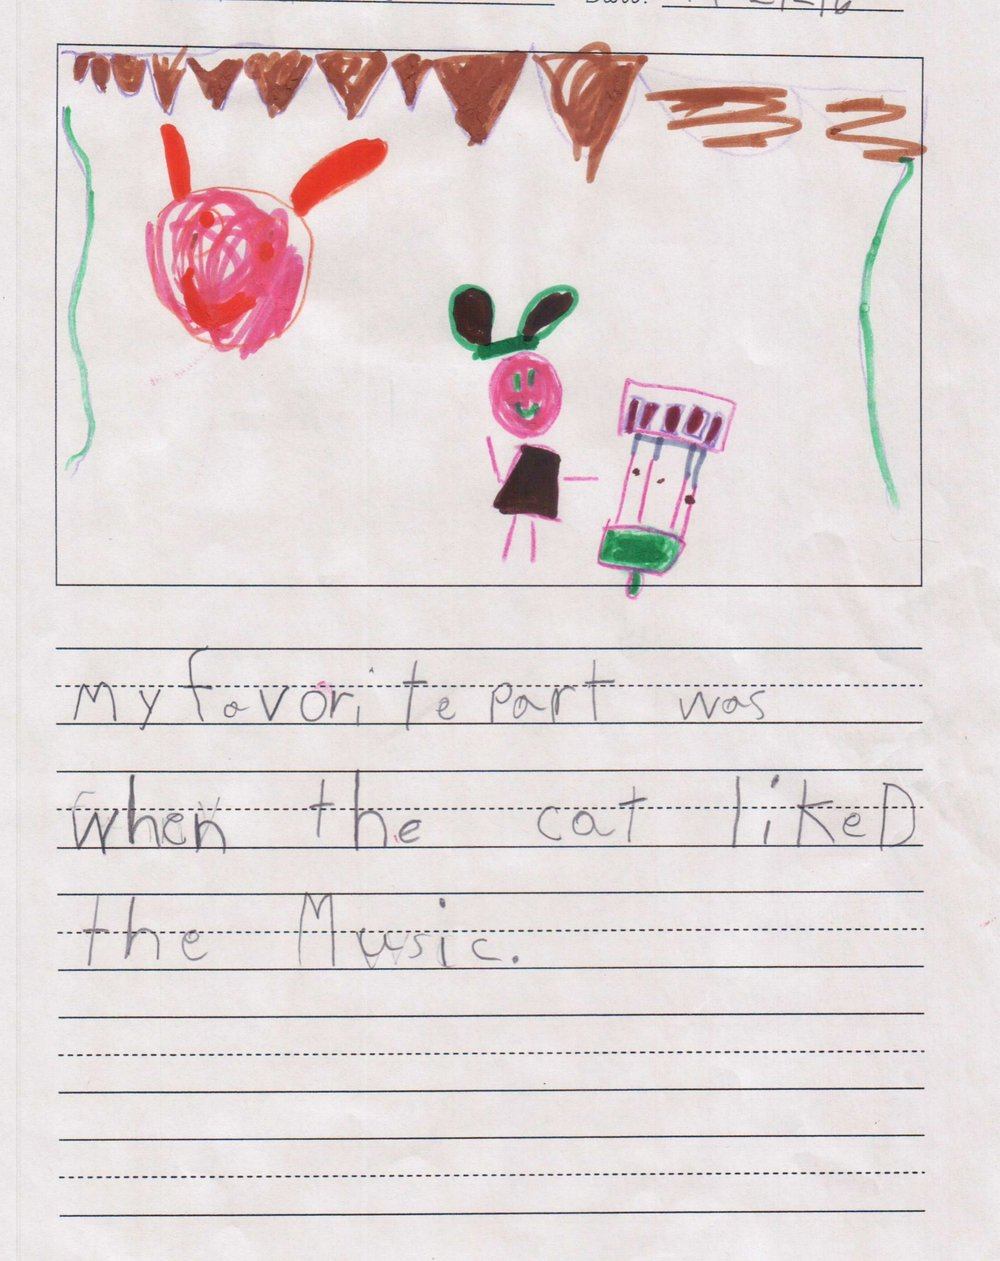 """My favorite part was when the cat liked the music."" - A student from Scarborough Elementary/Houston ISD."